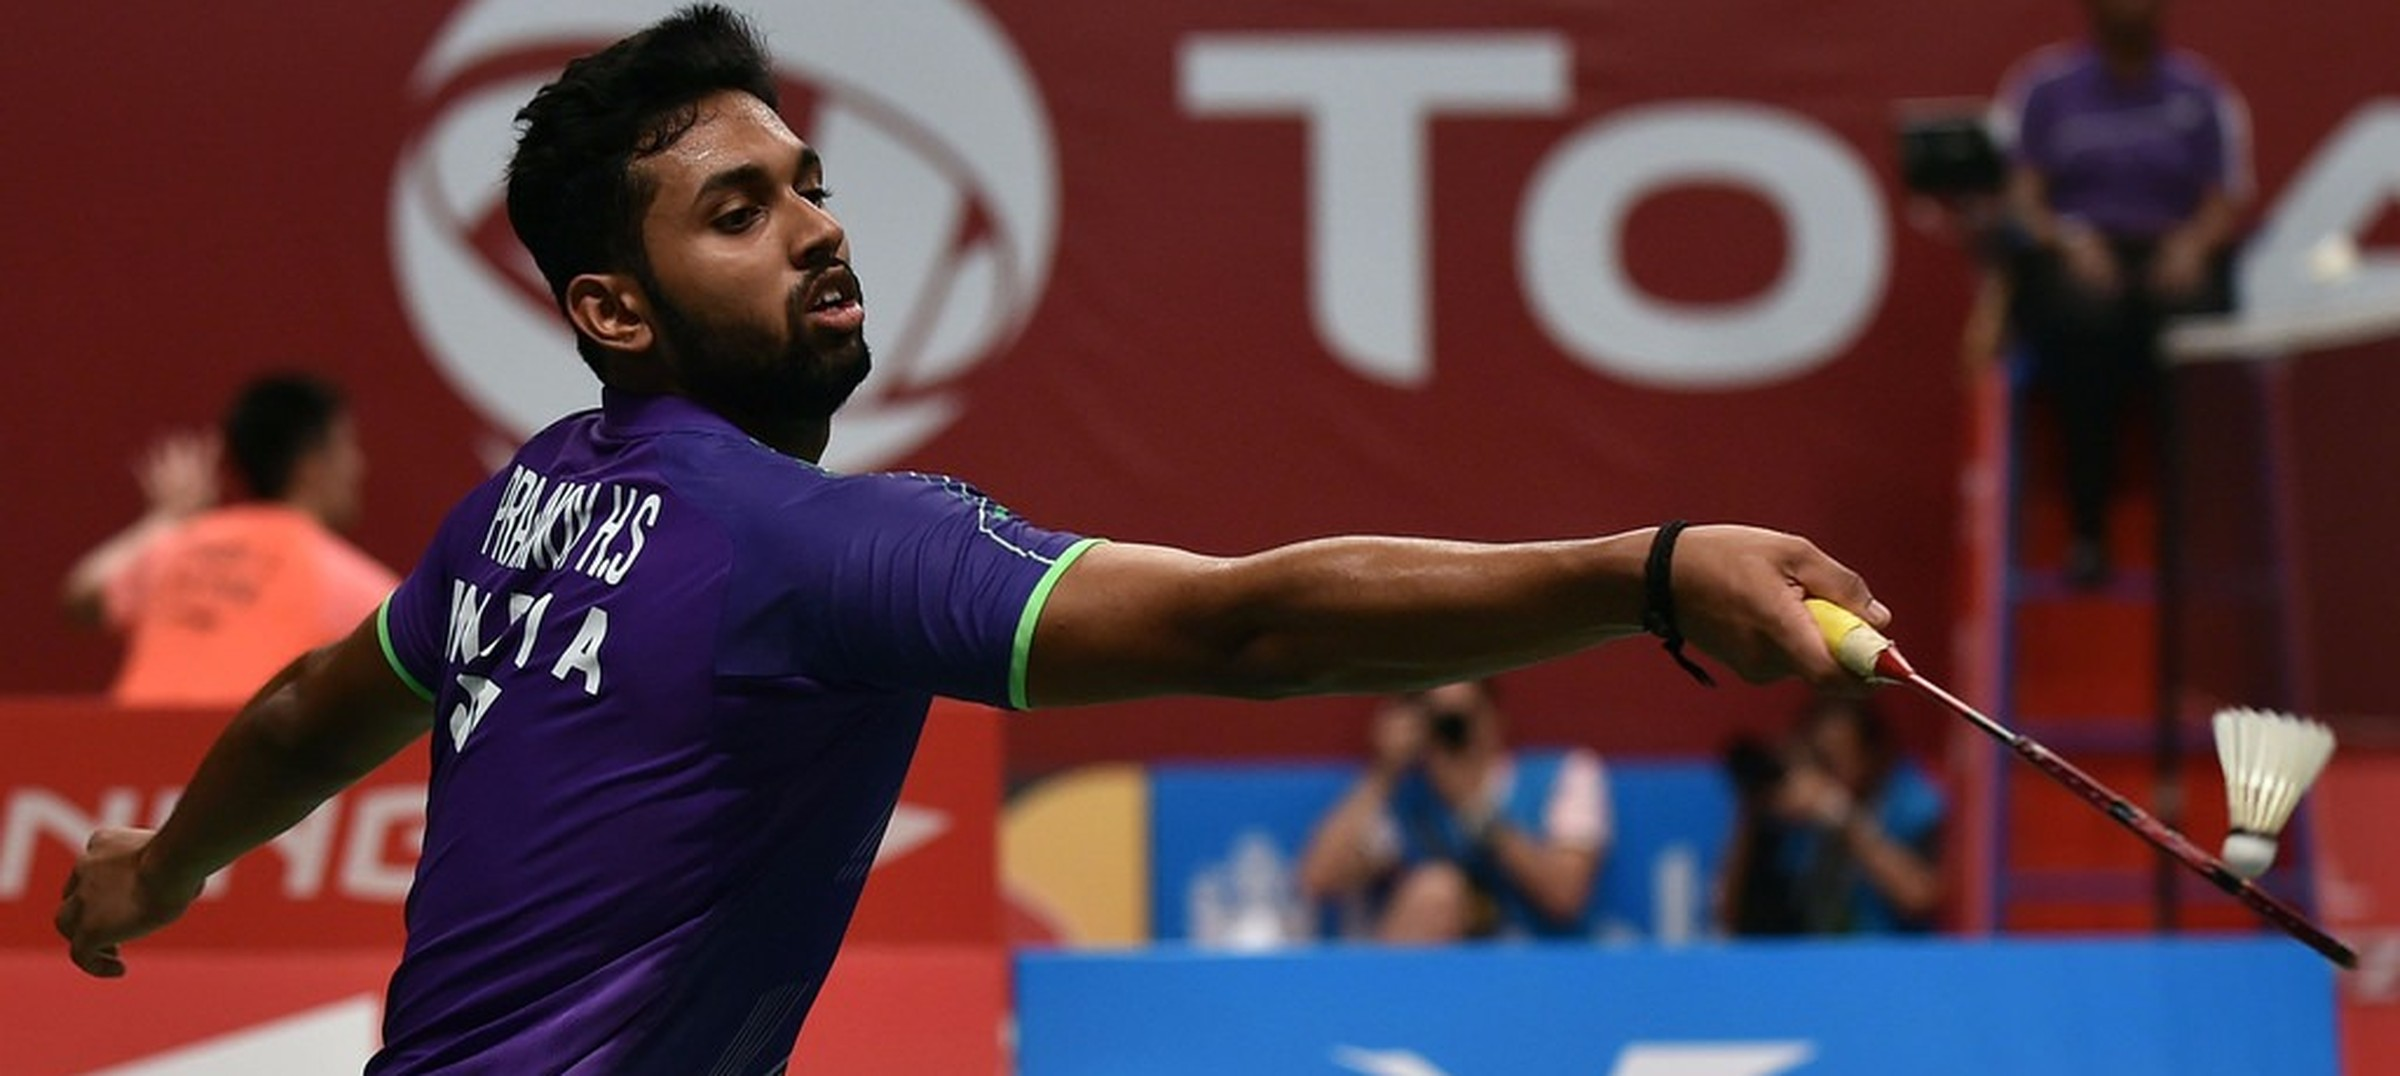 Prannoy, Srikanth reach second round of Indonesia Open, Sai Praneeth knocked out by world No 1